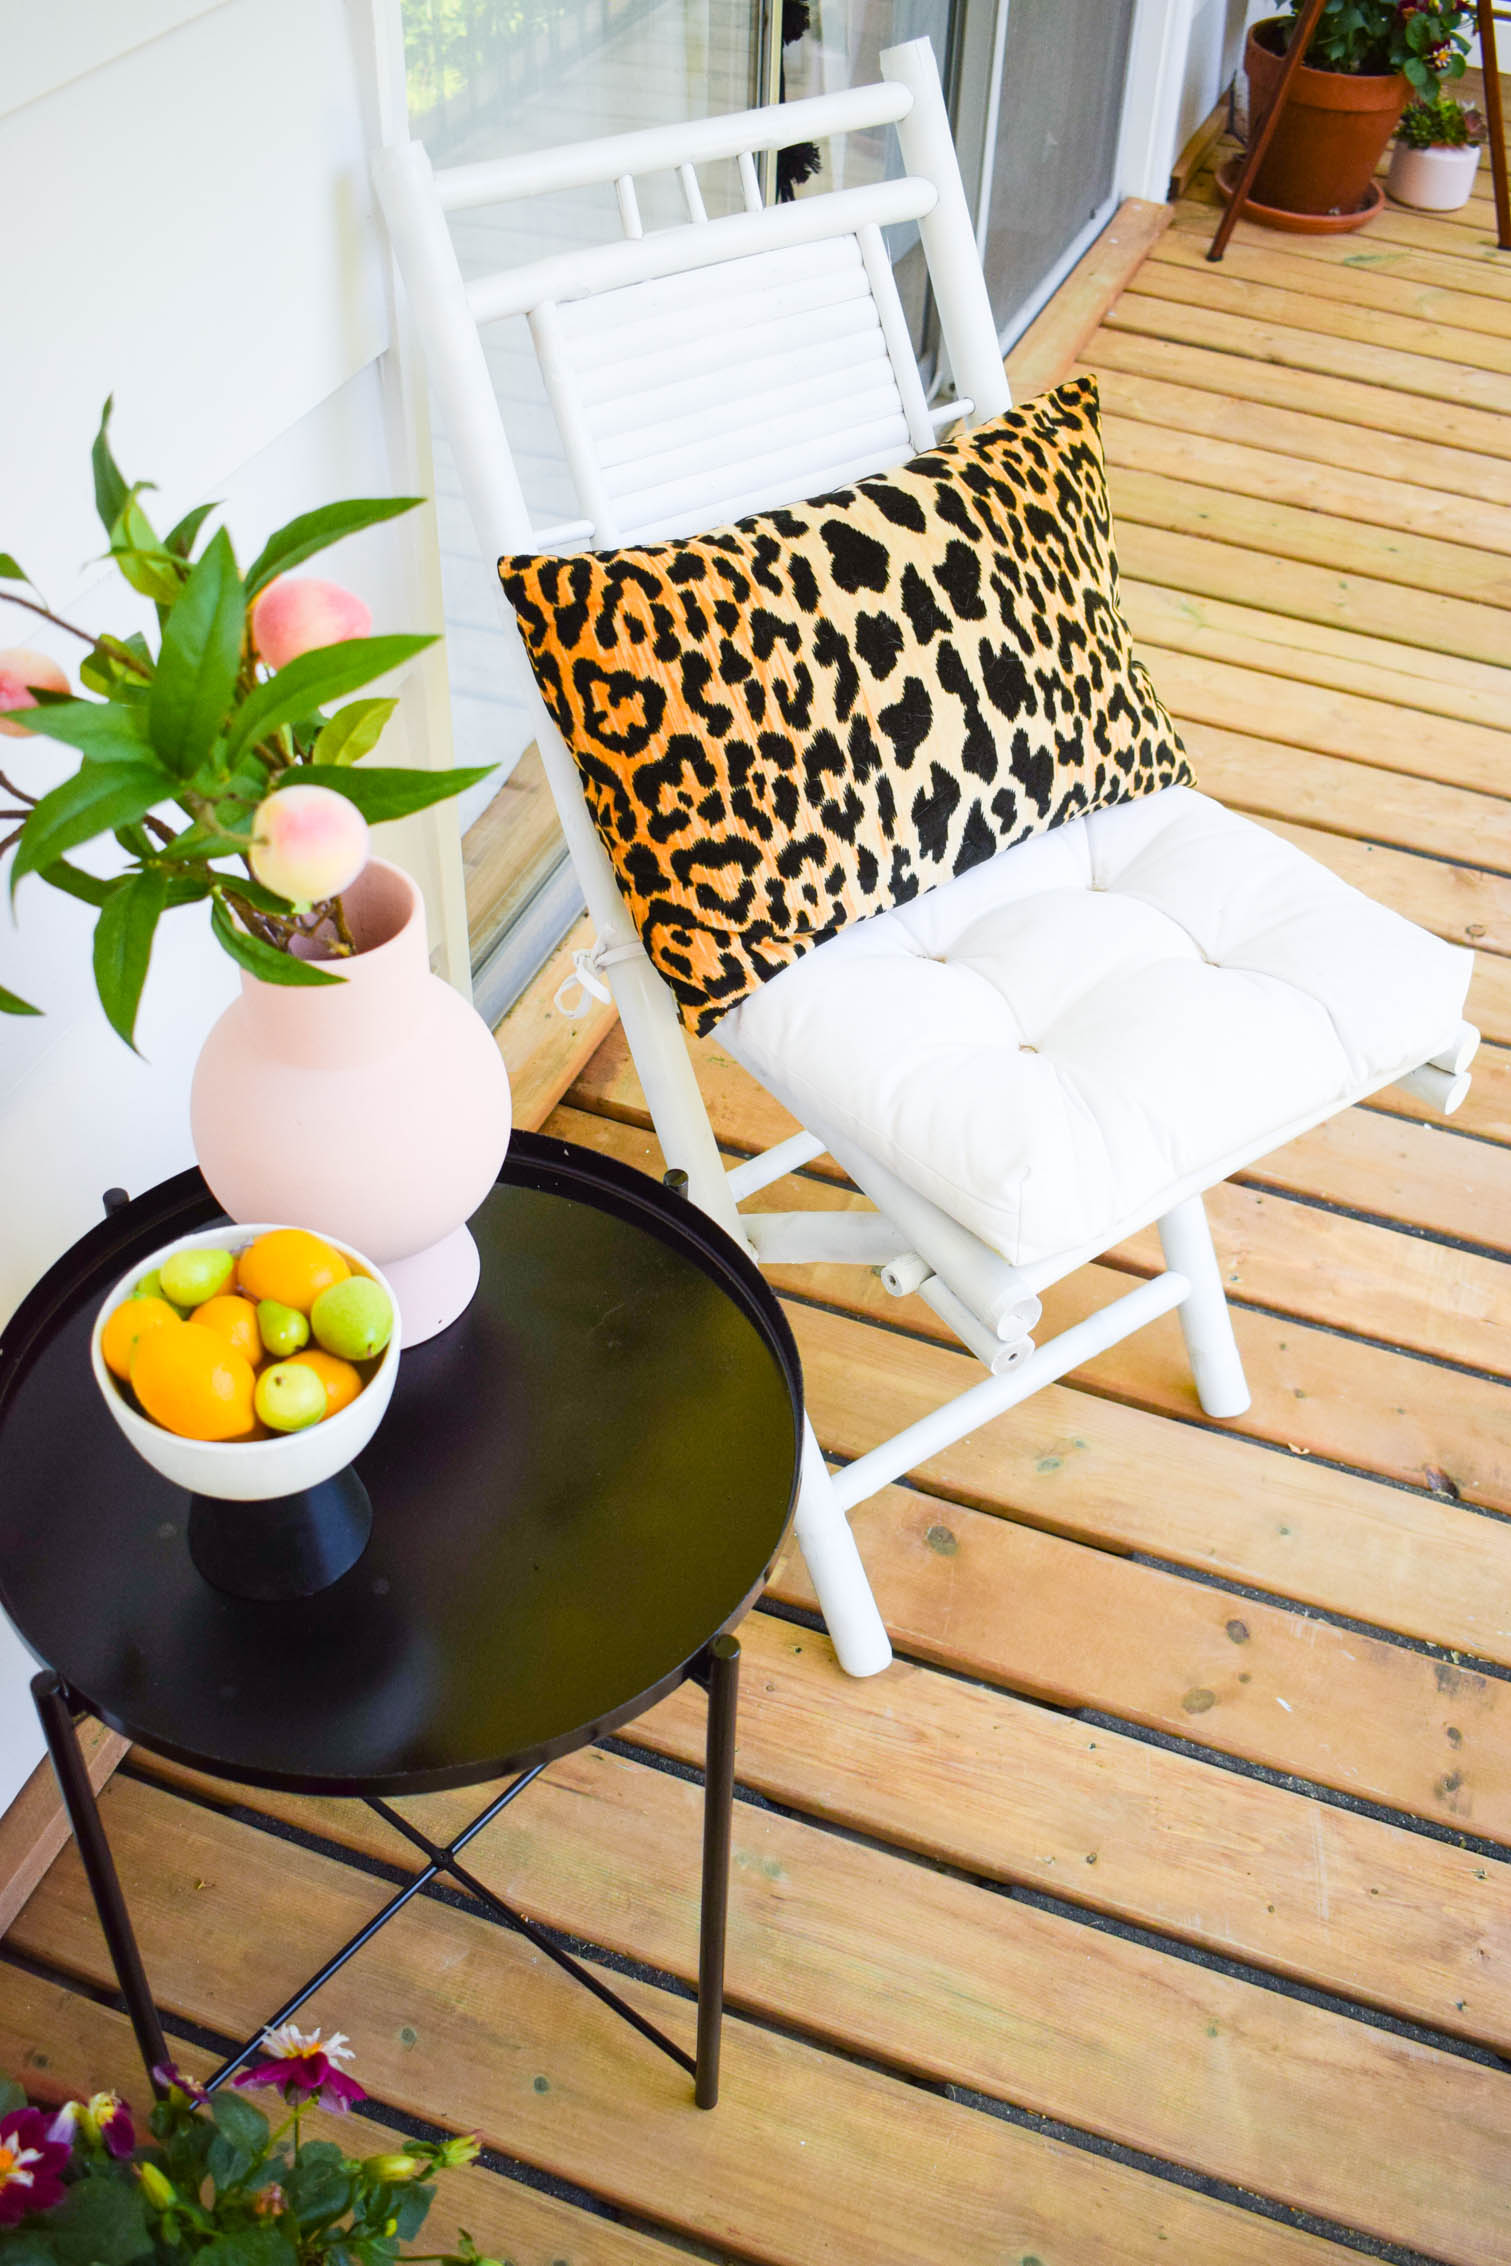 This summer is about enjoying what's at home, and enjoying your surroundings. Here's a few ideas for colourful summer entertaining decor to keep cool in style.